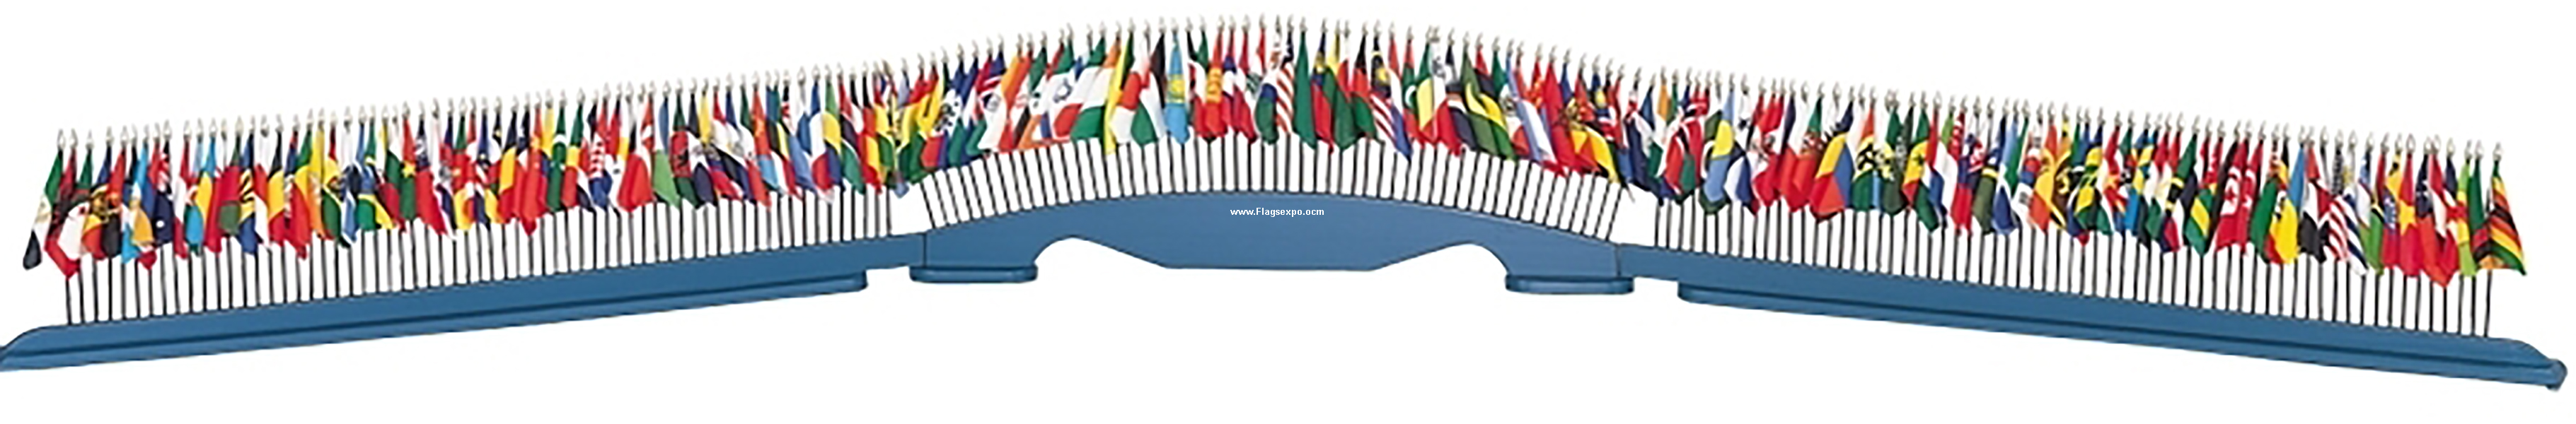 Flags of UN Members Nations